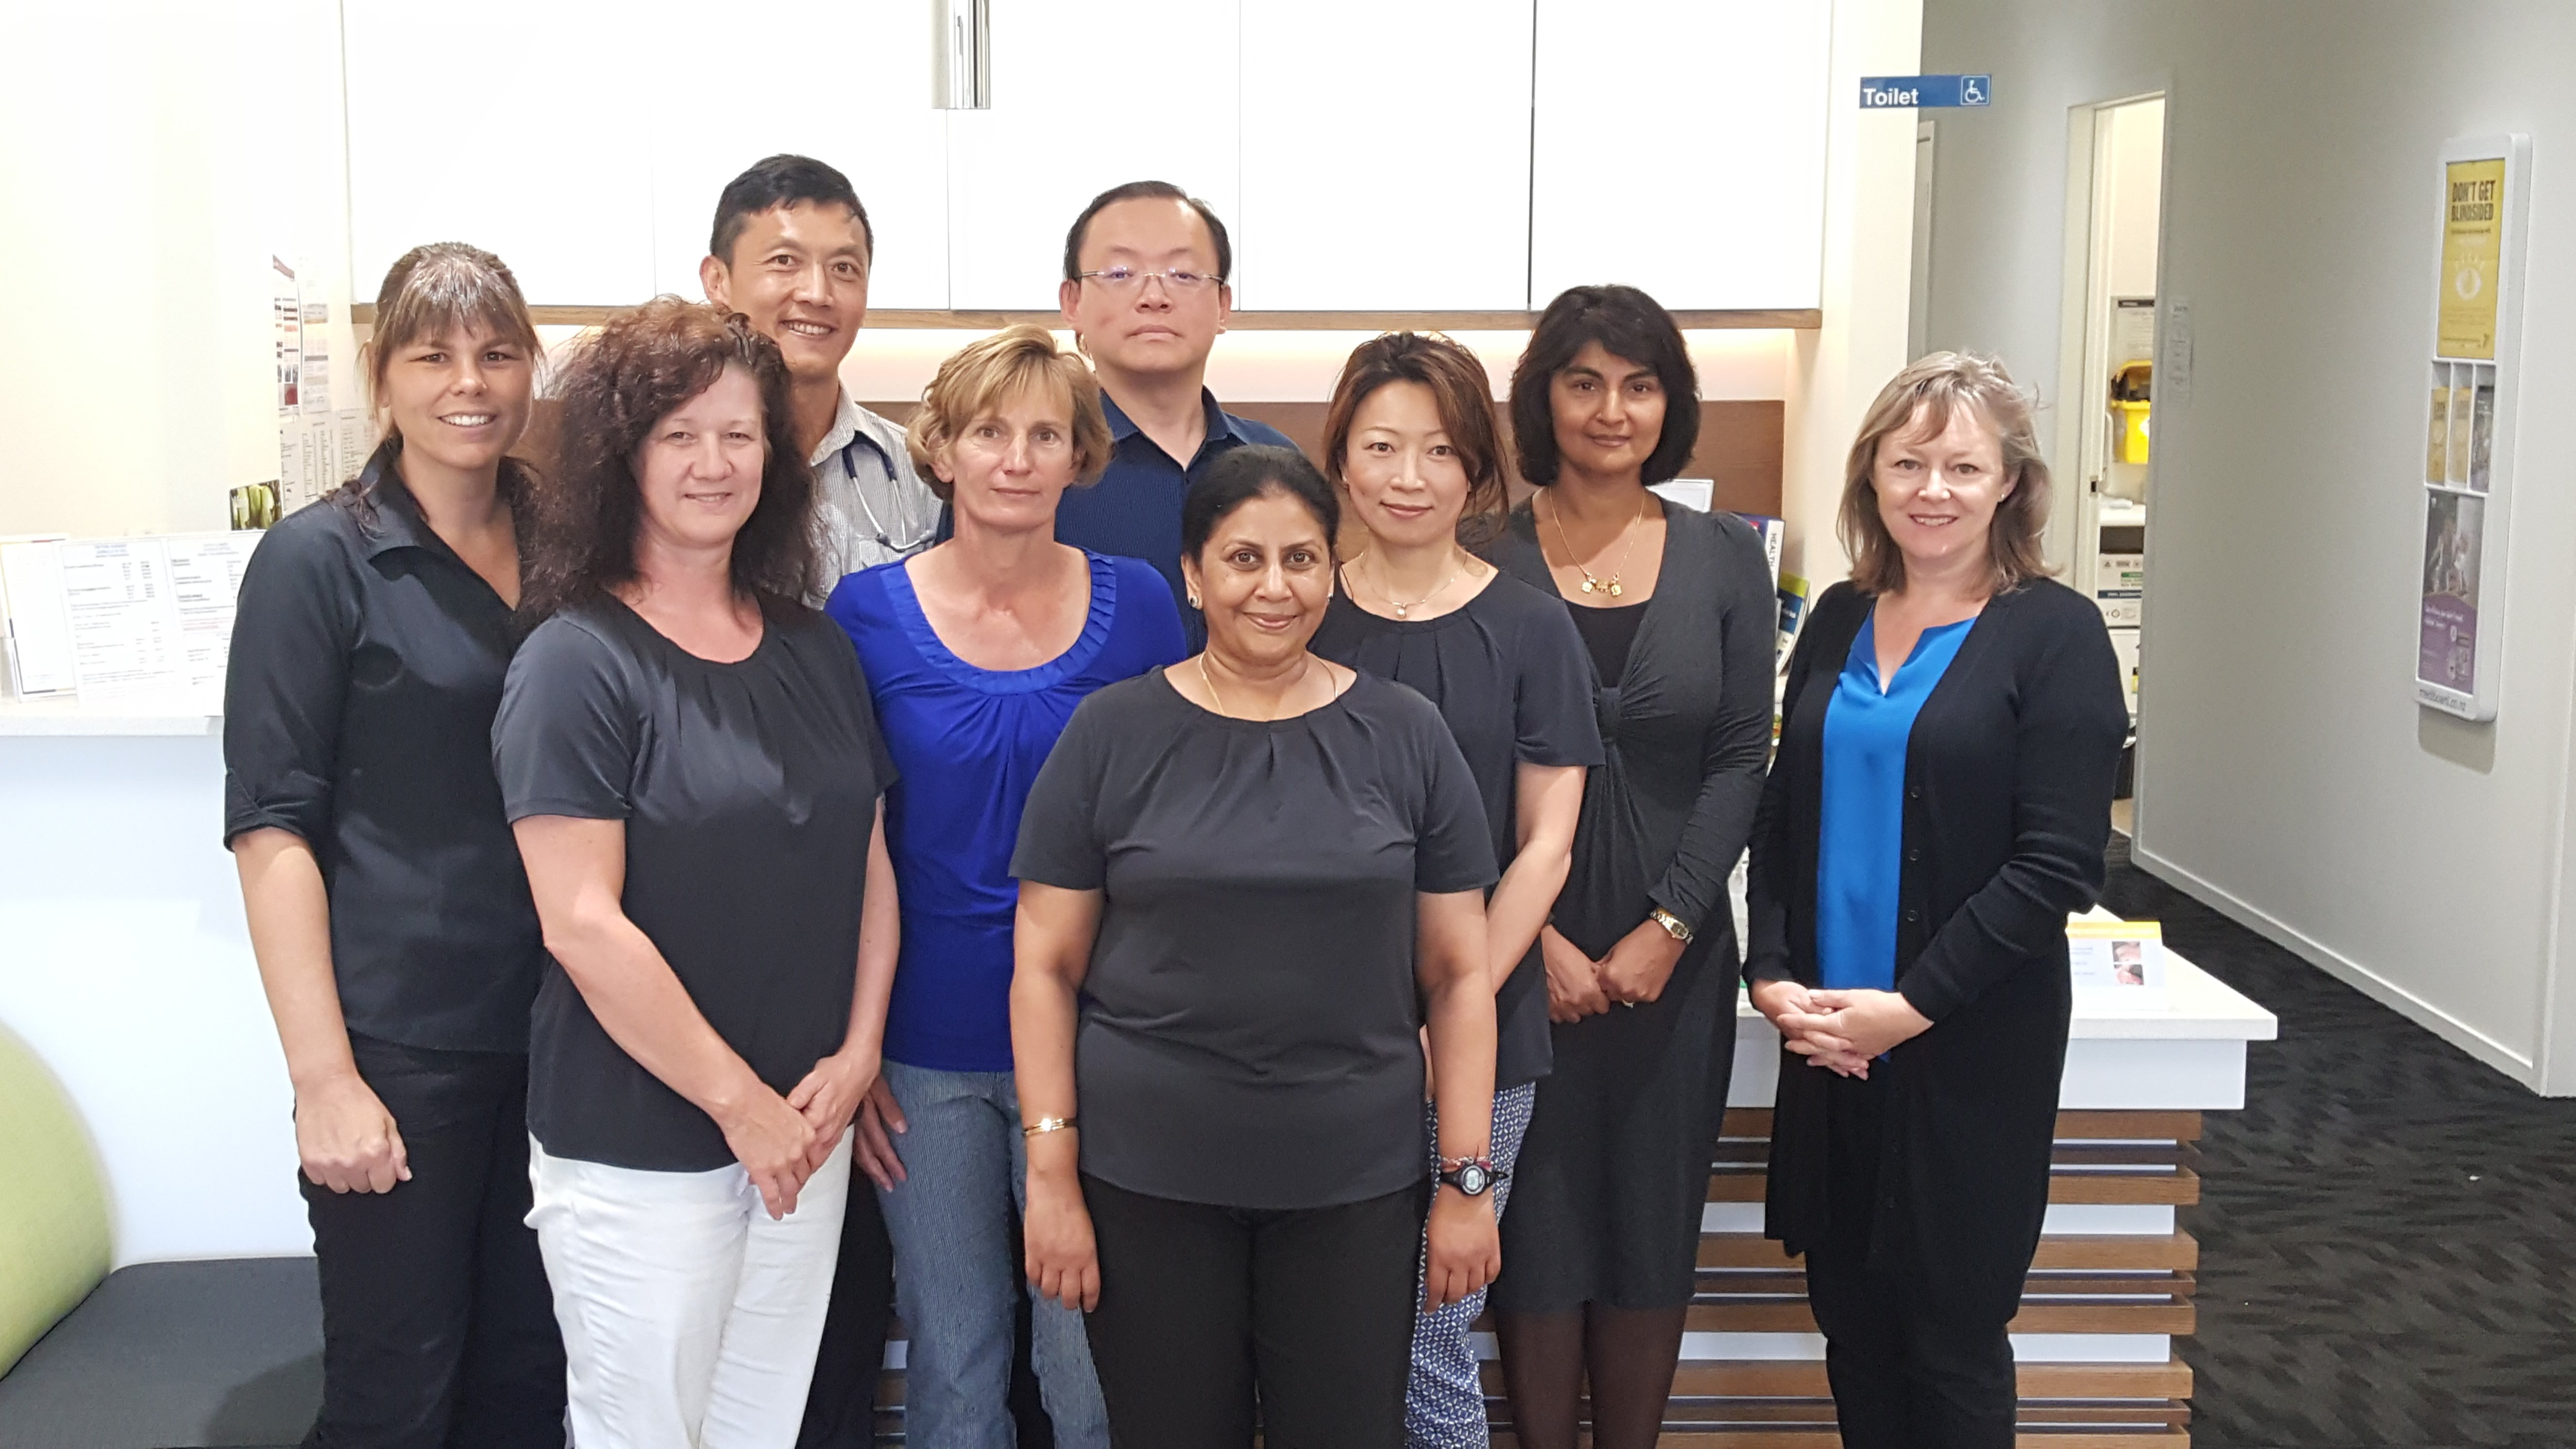 Picton Surgery staff